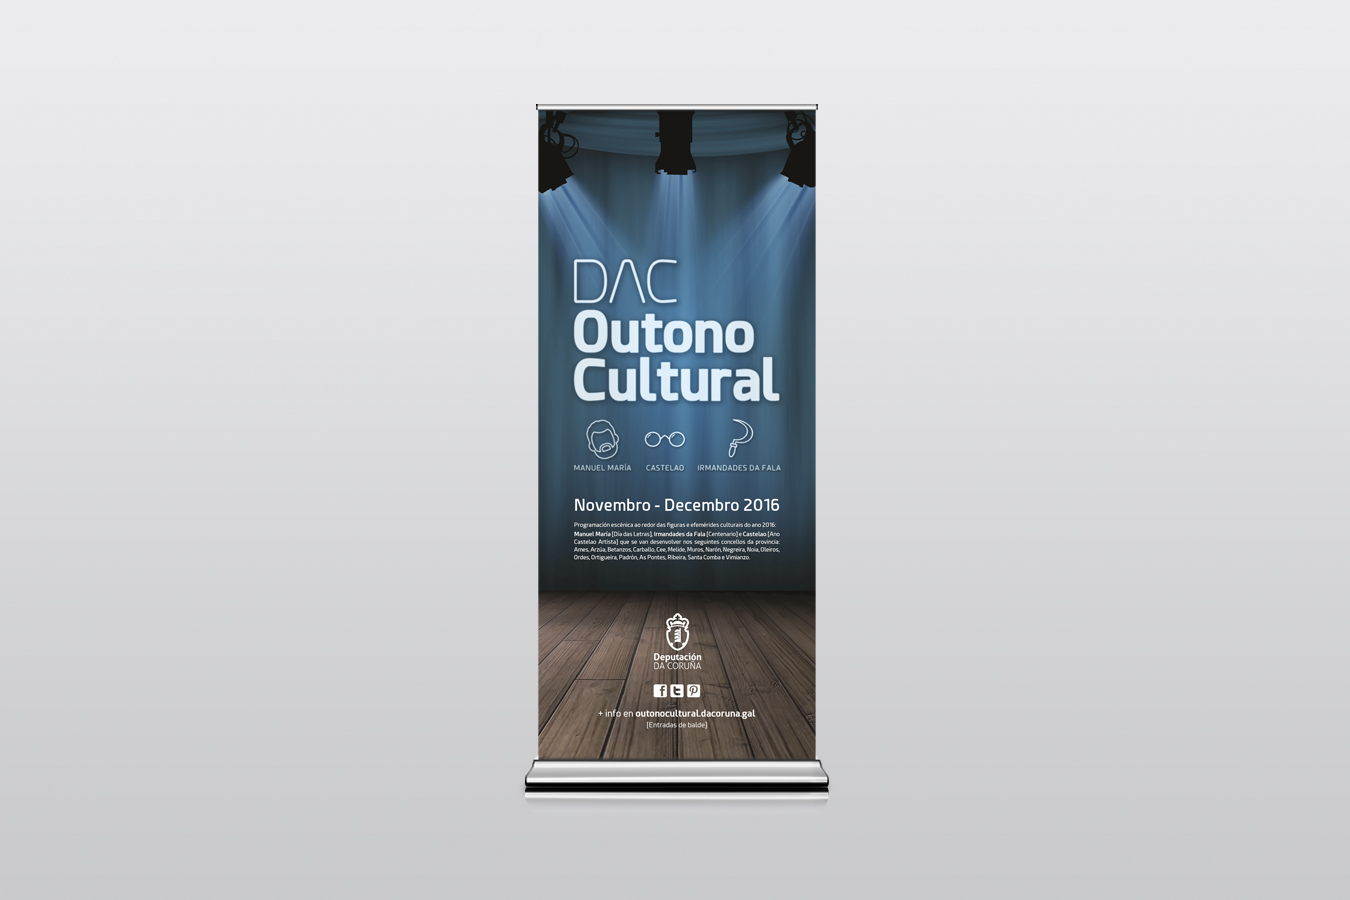 DAC OUTONO CULTURAL roll up